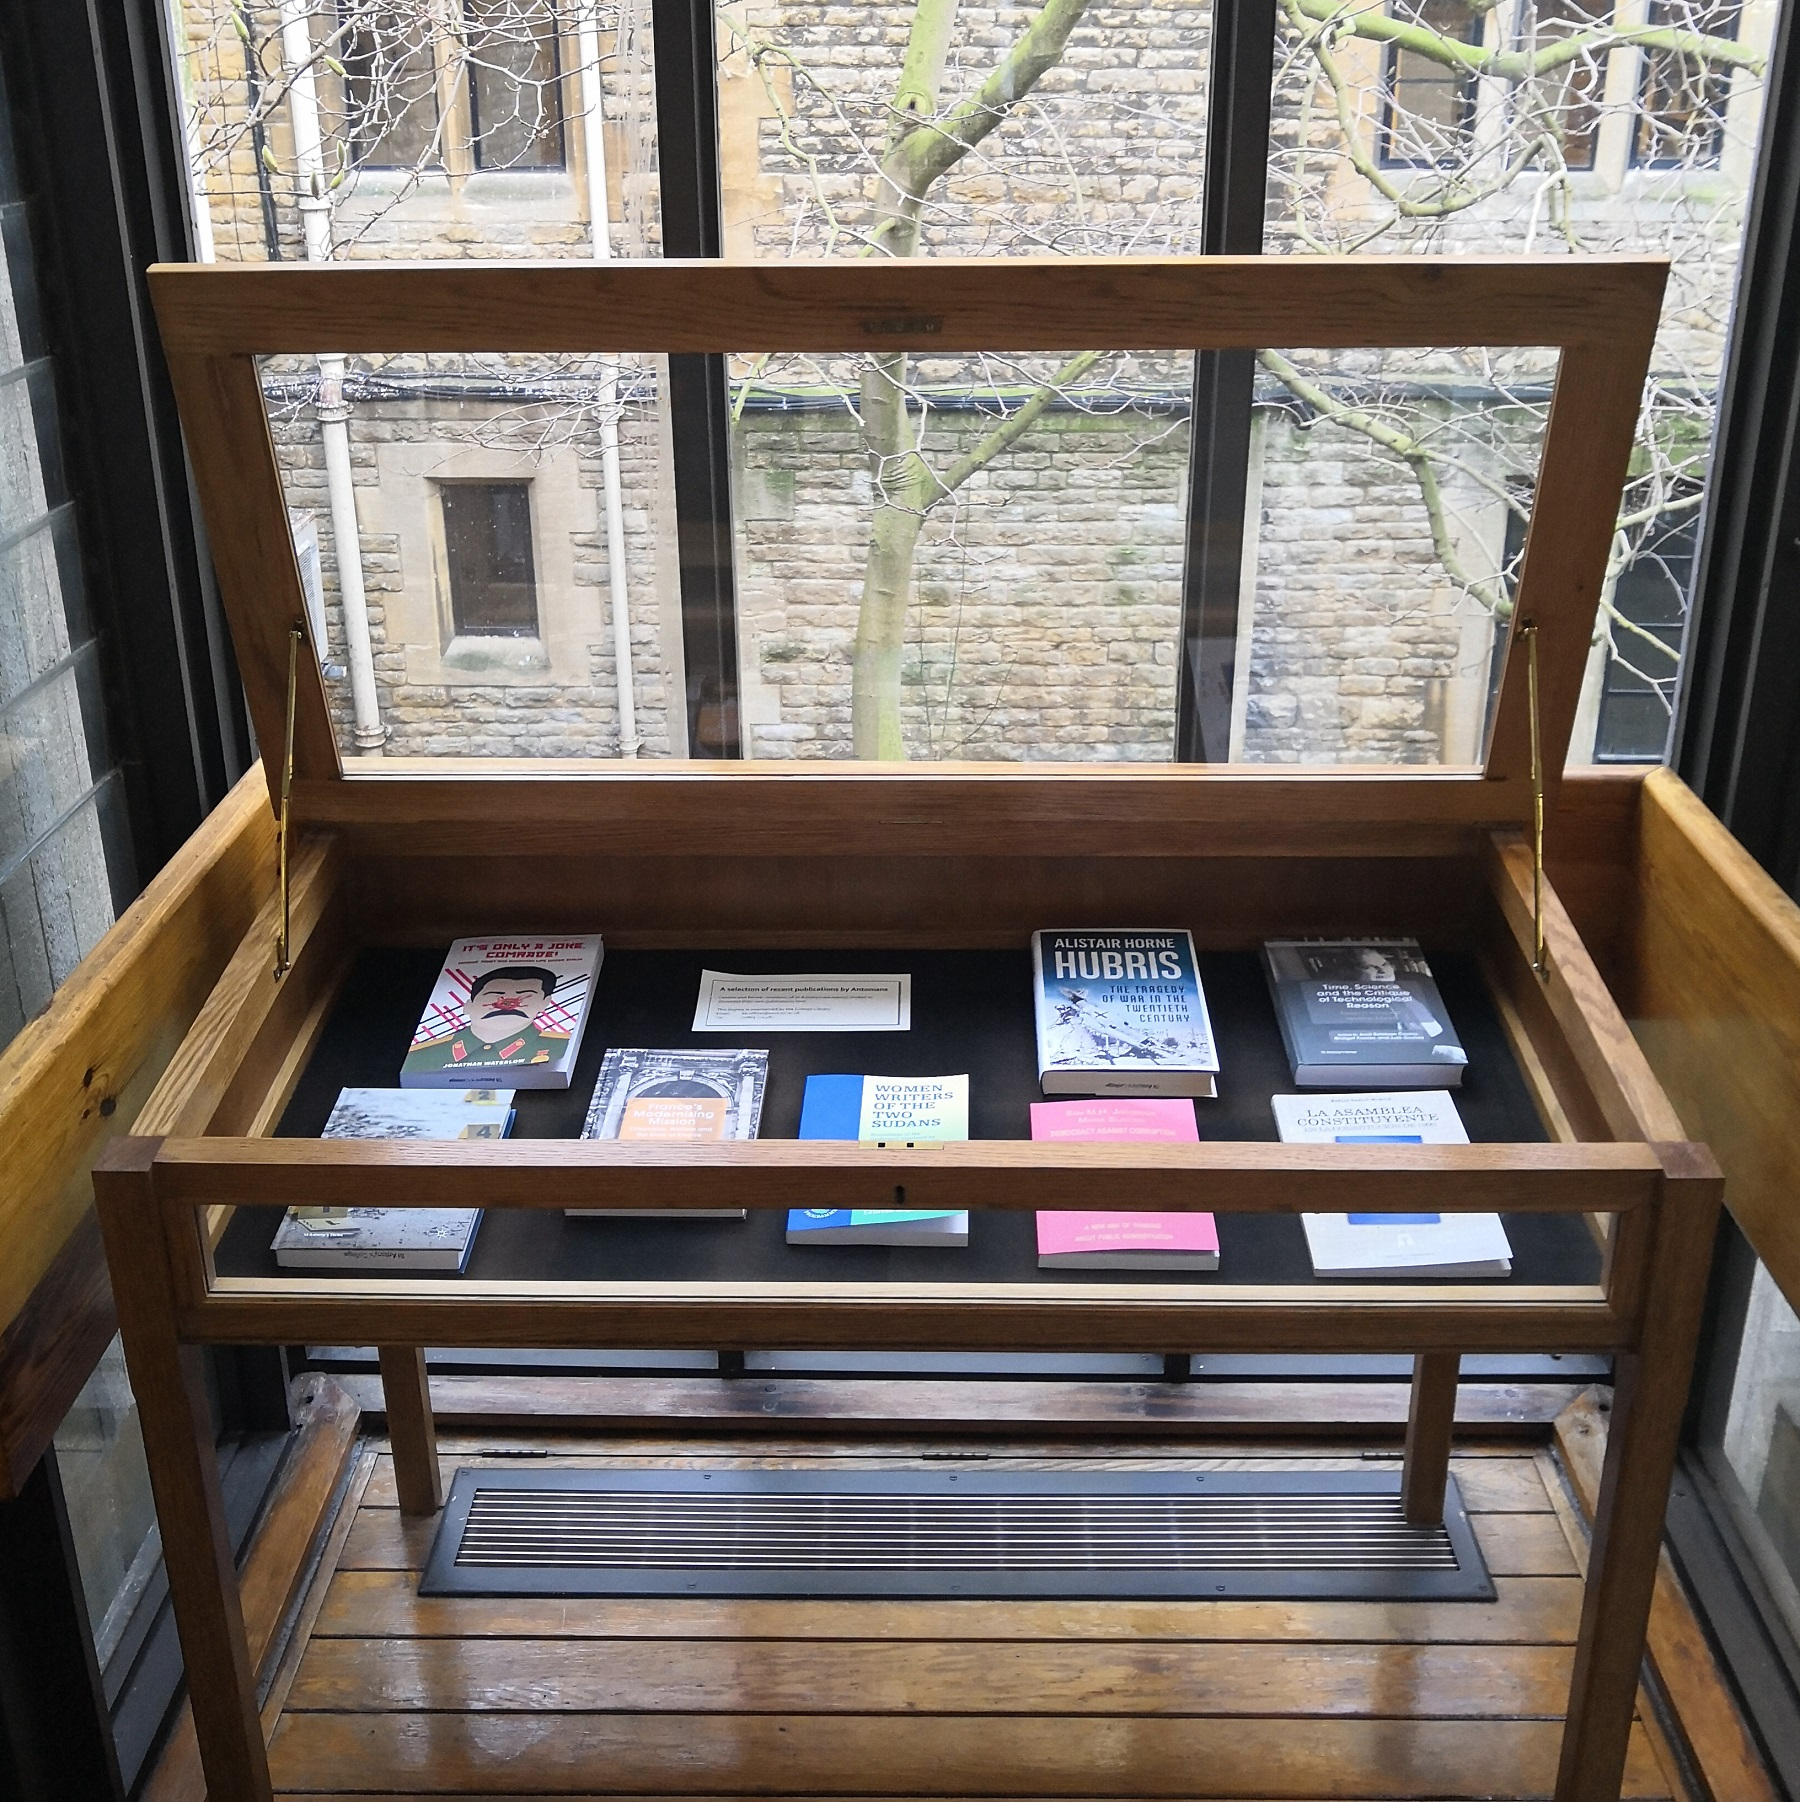 A photograph of the members' books display case.